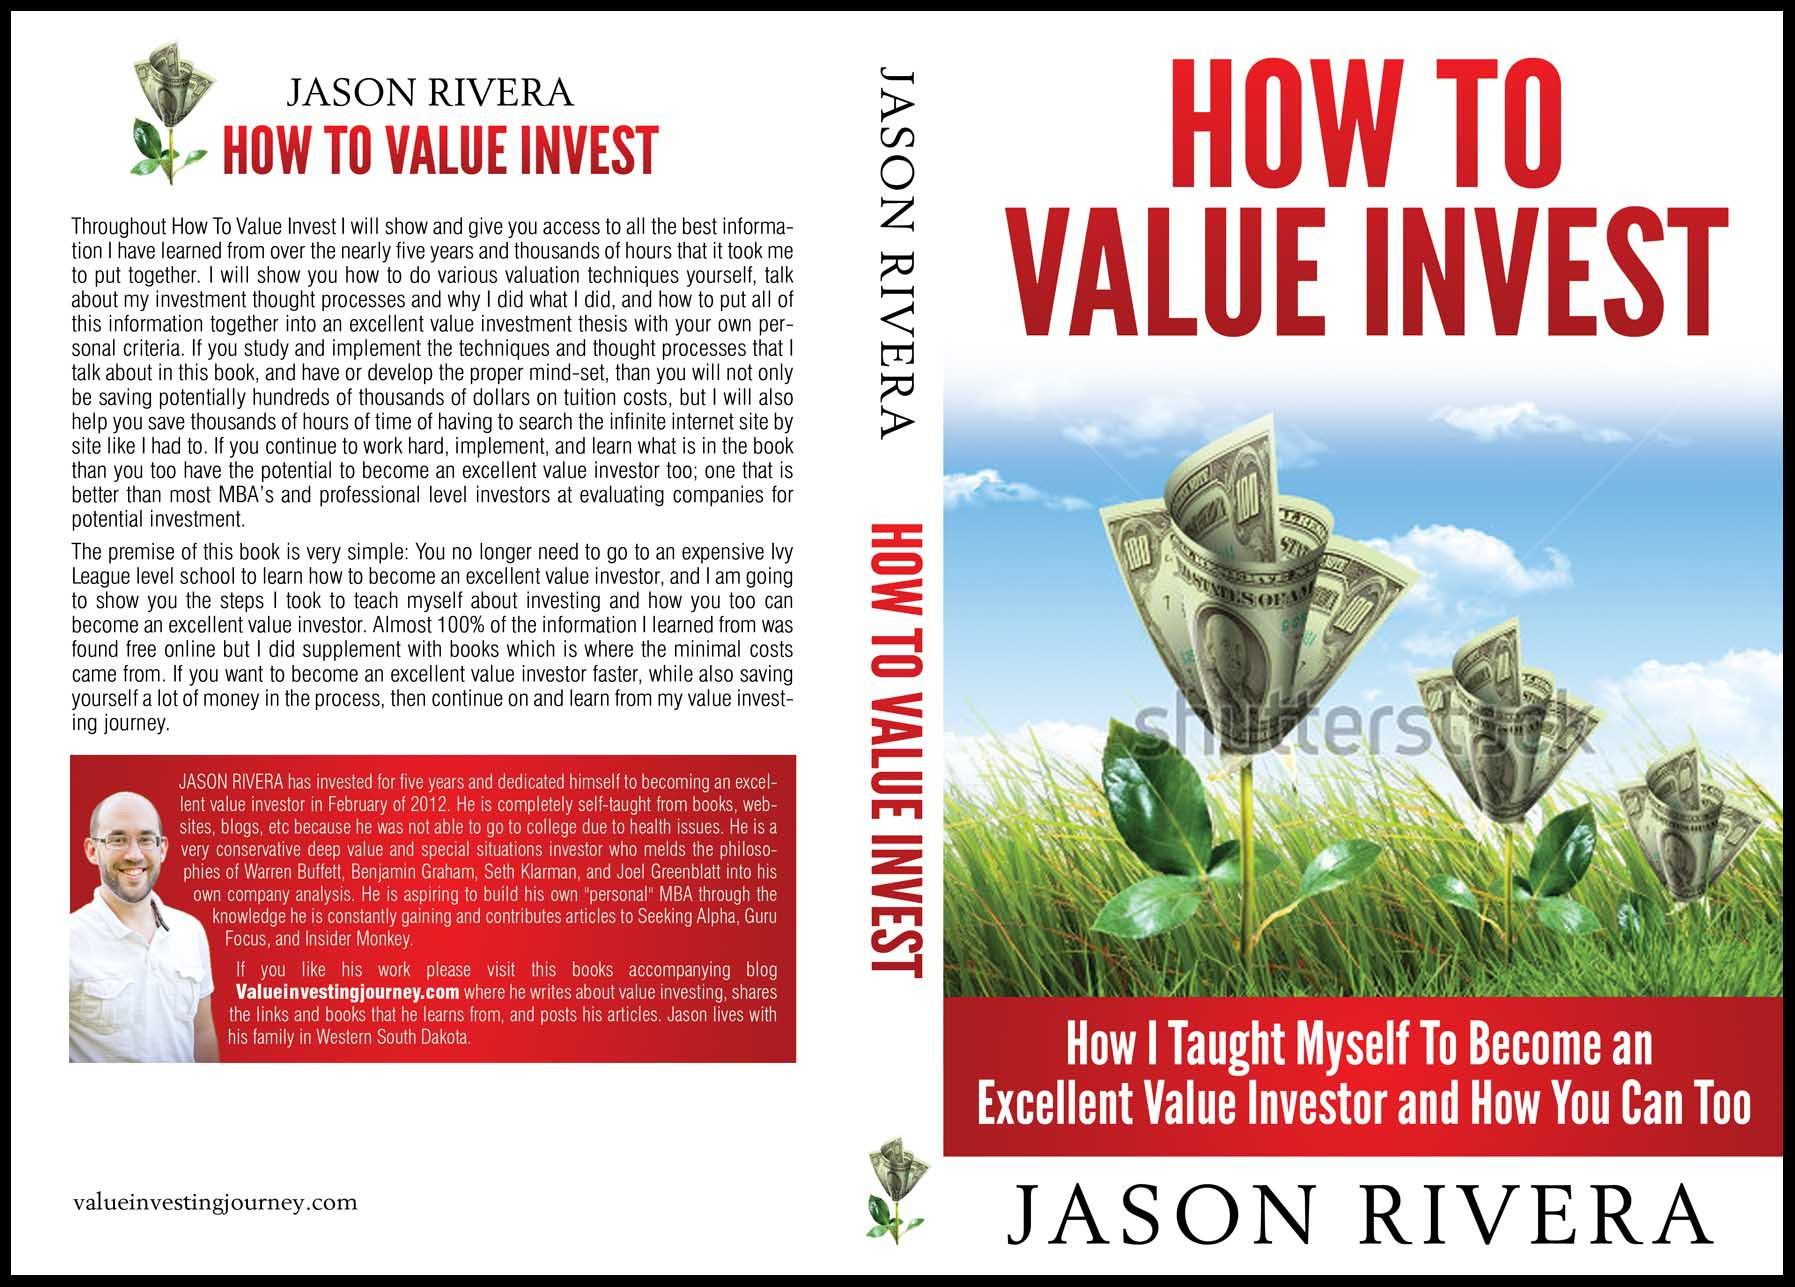 Value Investing Journey needs a new book or magazine cover